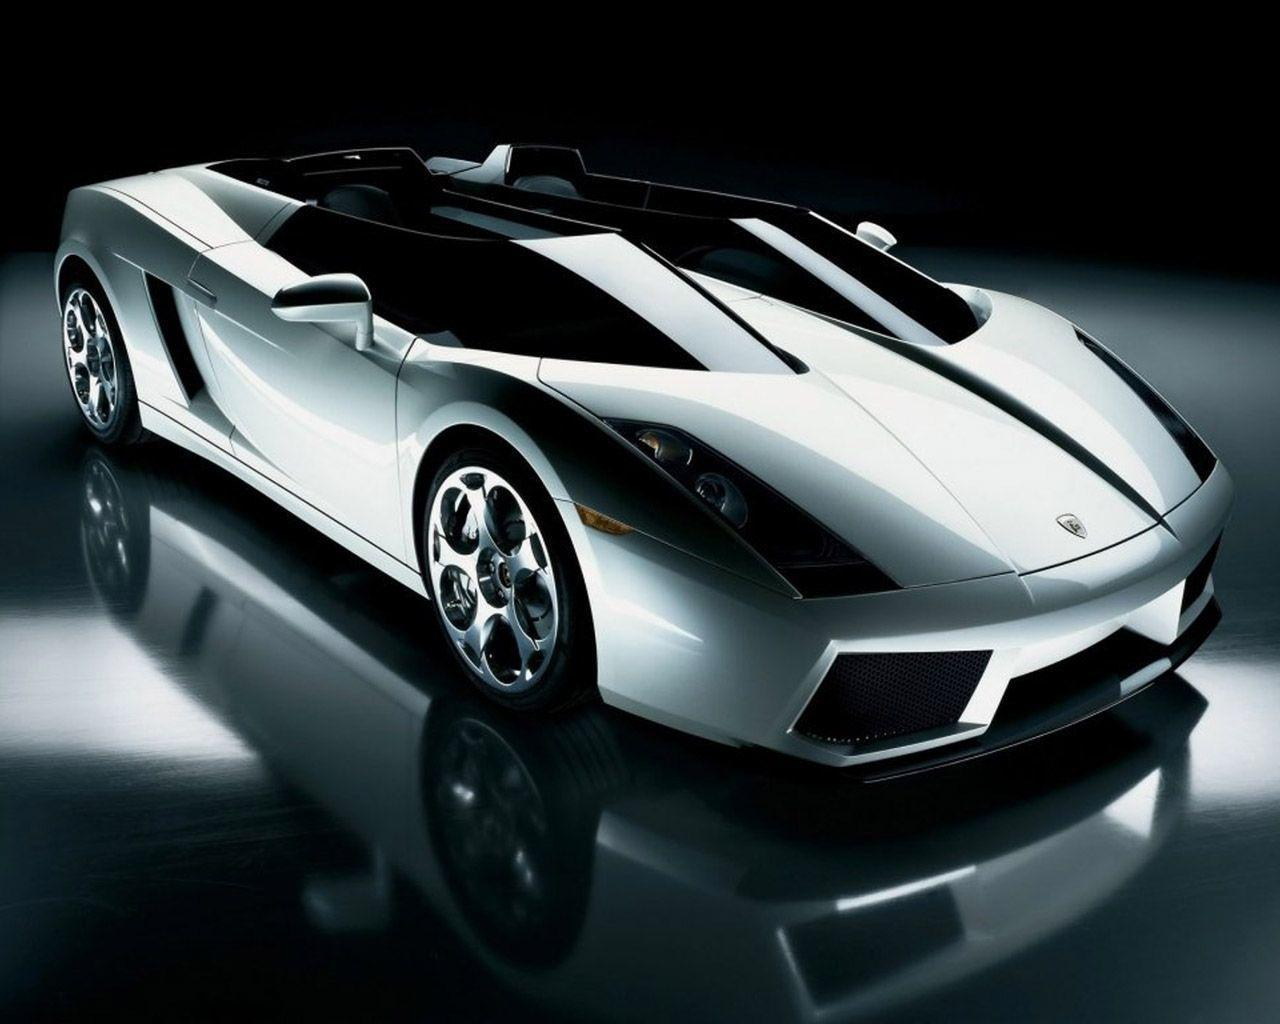 Wallpapers Of Cars Wallpaper Cave